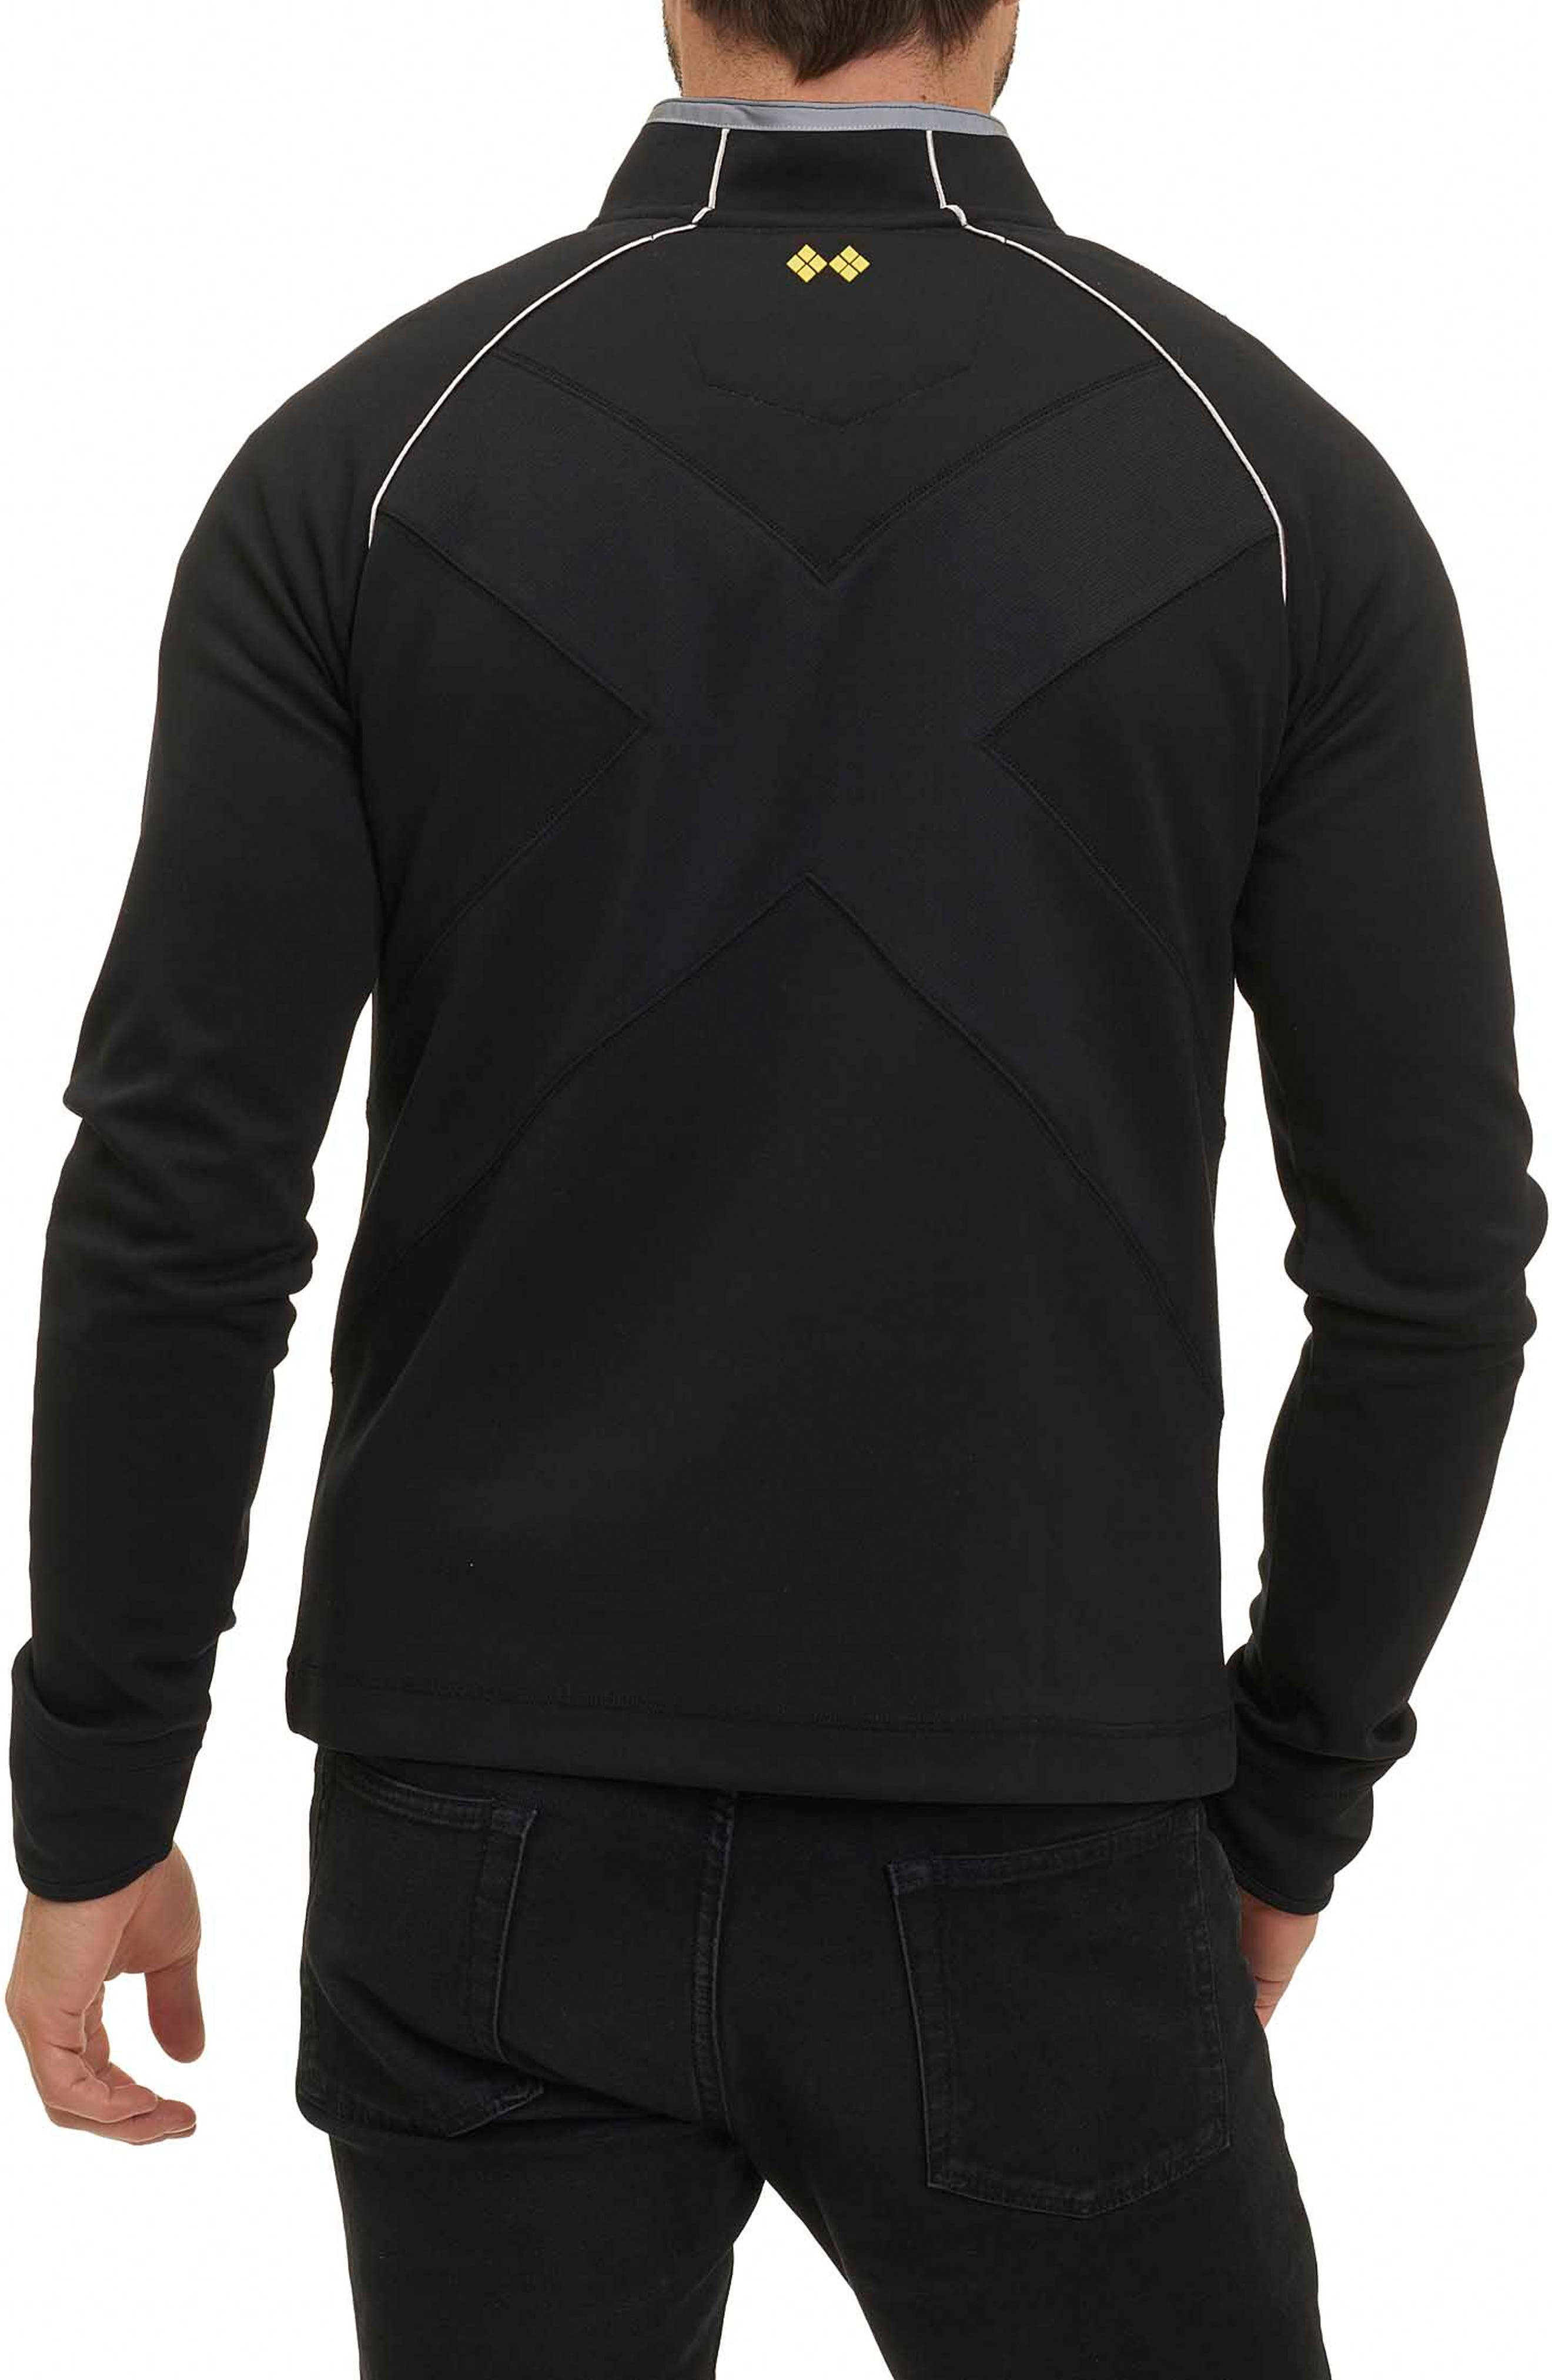 Taylore Quarter Zip Pullover,                             Alternate thumbnail 2, color,                             001